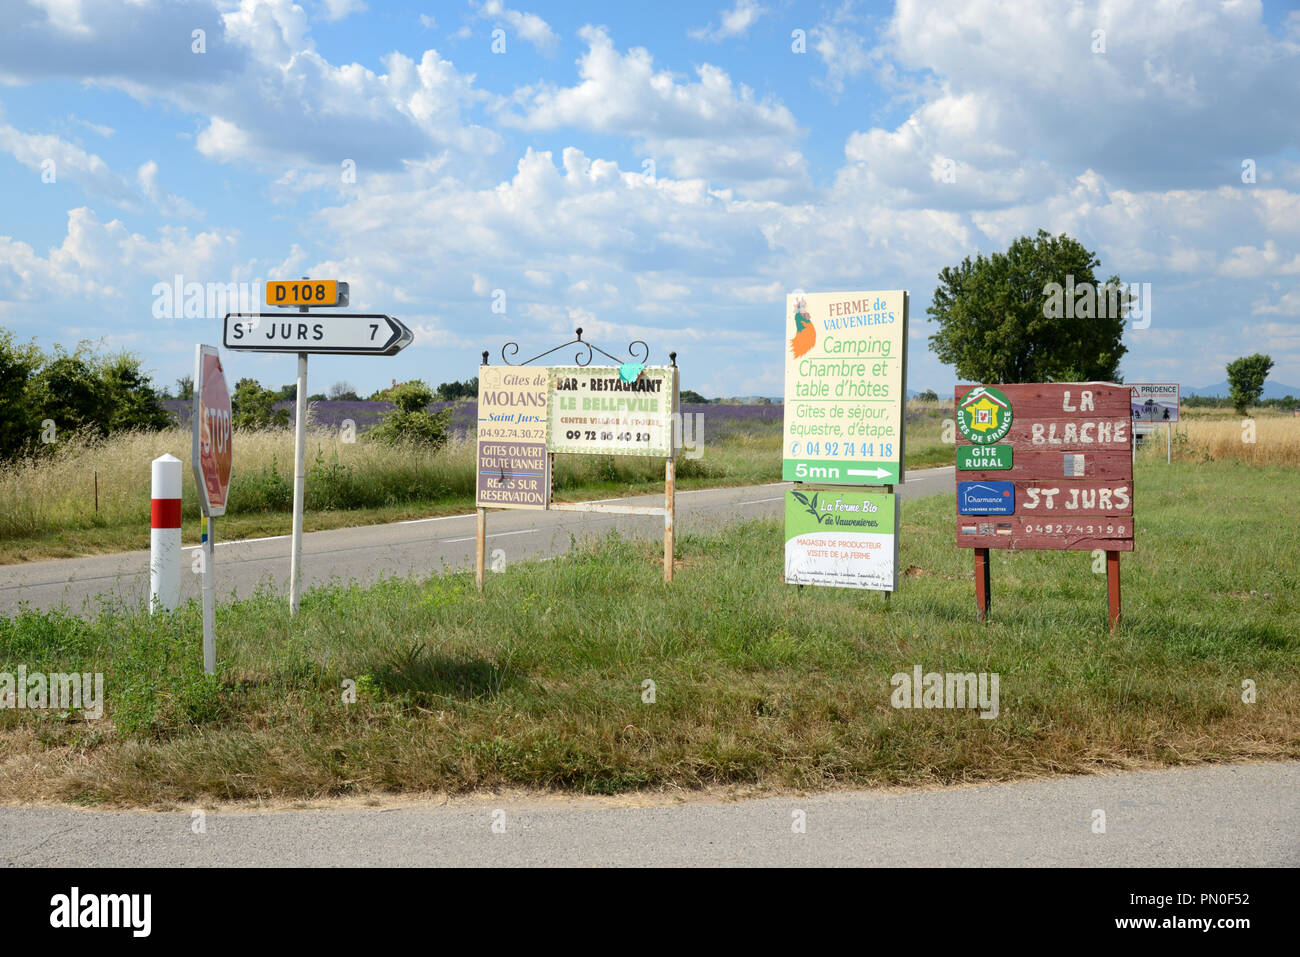 Multitude of Roadside Advertising Panels & Roadside Signs on the Valensole Plateau Provence France - Stock Image